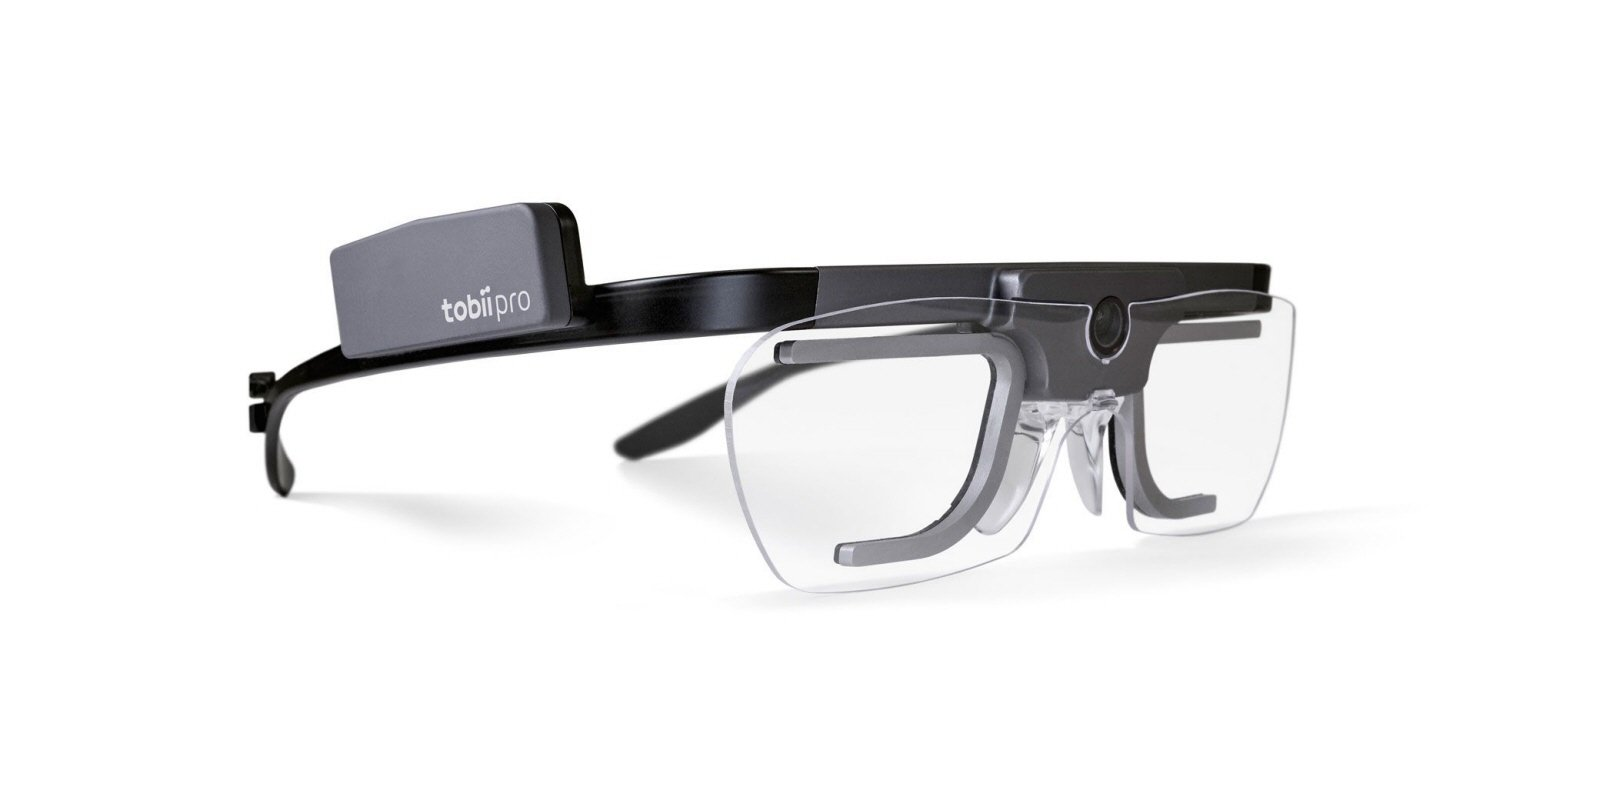 Tobii Pro Glasses 2 wearable eye tracker